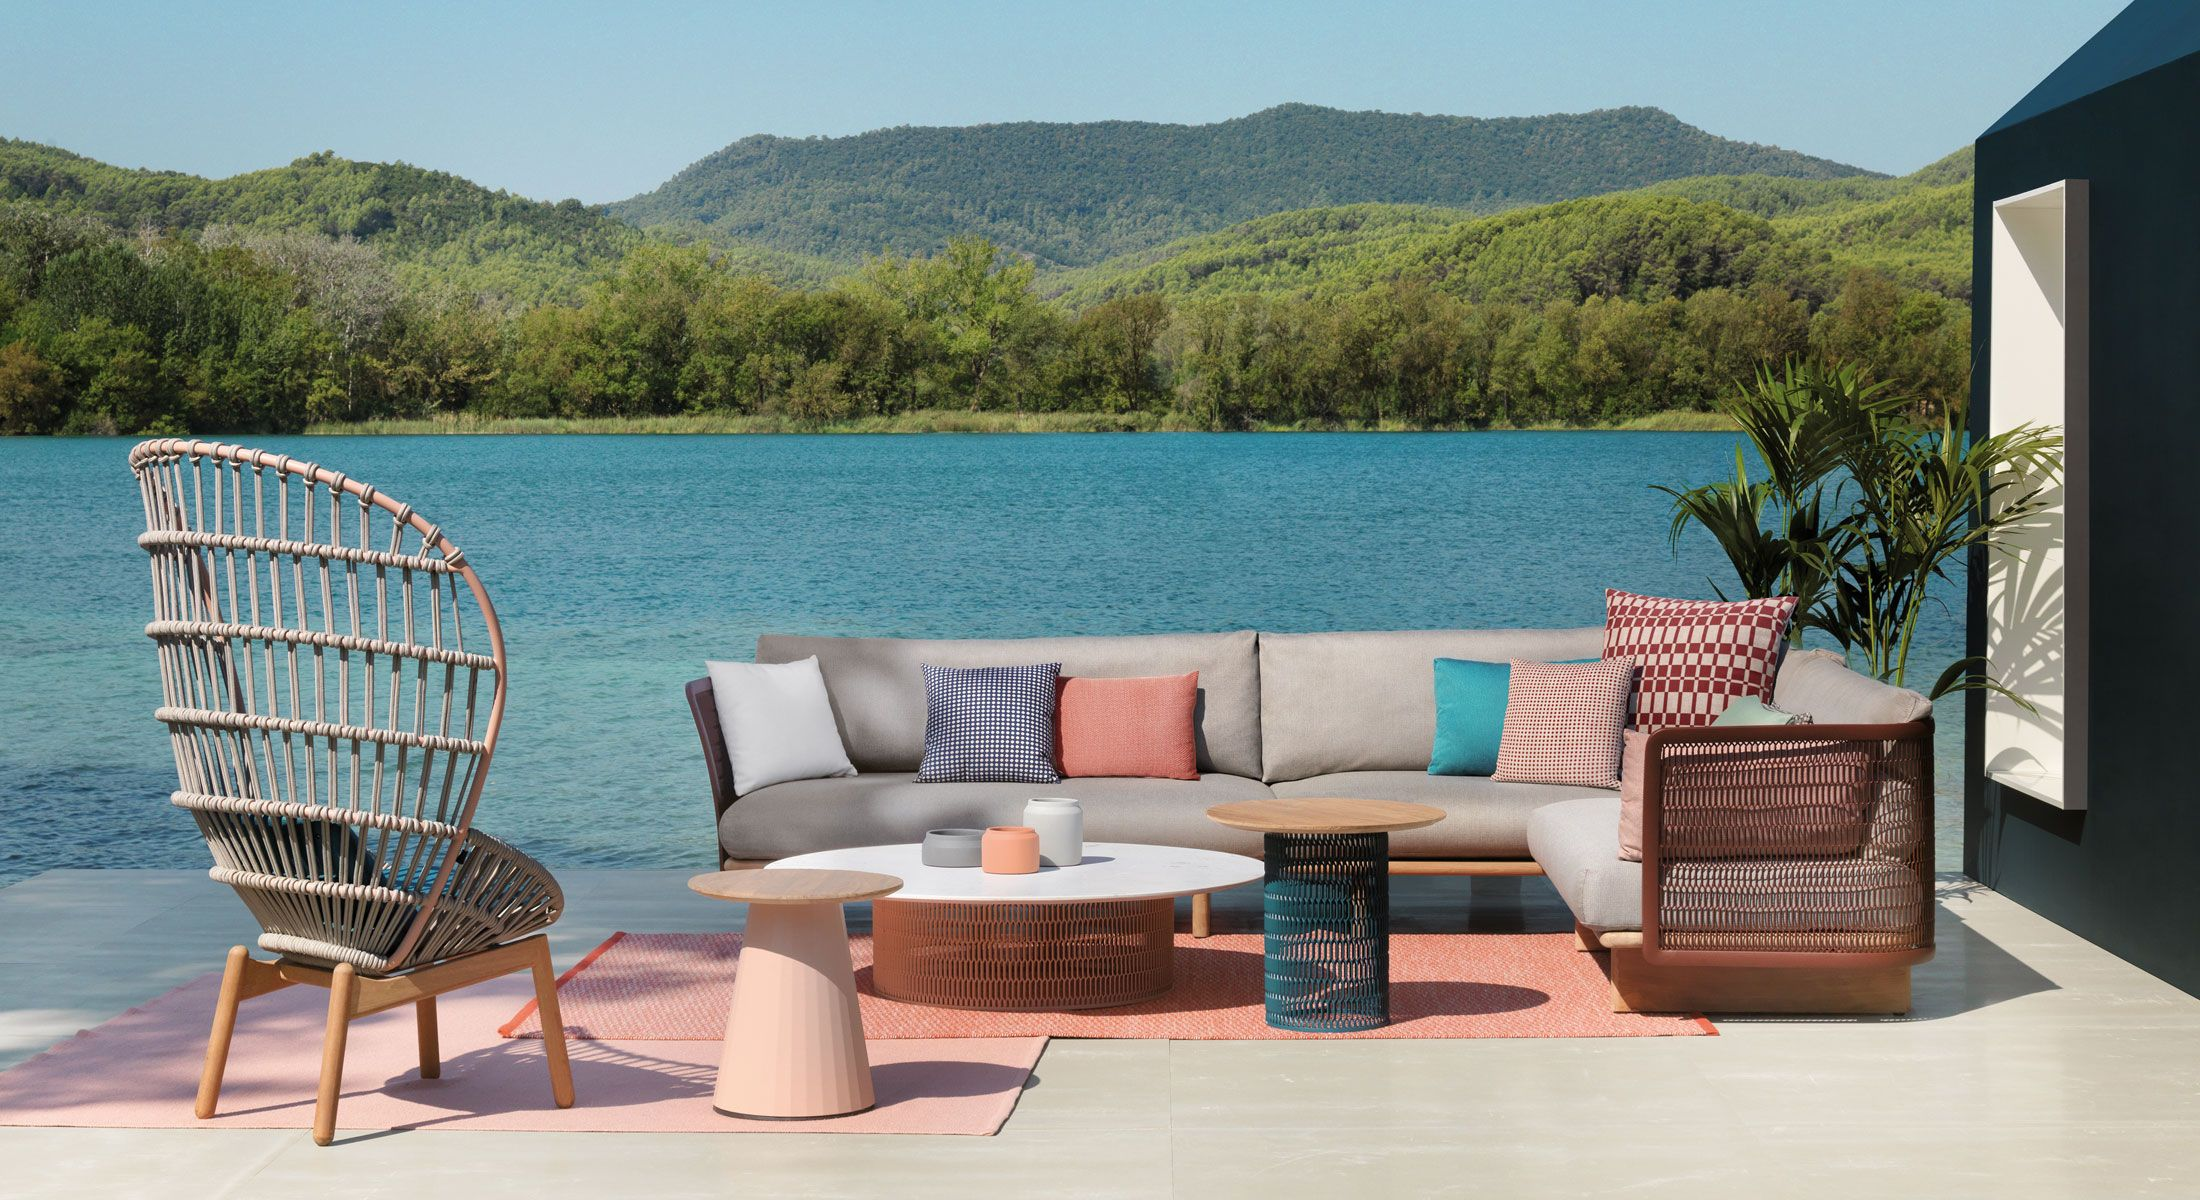 Kettal Outdoor Timeless Furniture Luxury Outdoor Furniture Outdoor Furniture Australia Outdoor Furniture